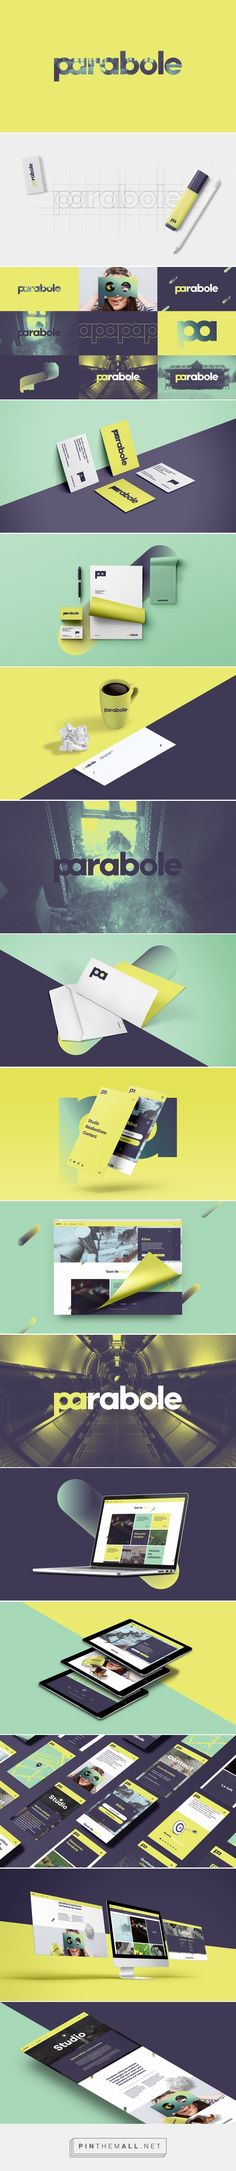 Parabole on Behance - created via https://pinthemall.net